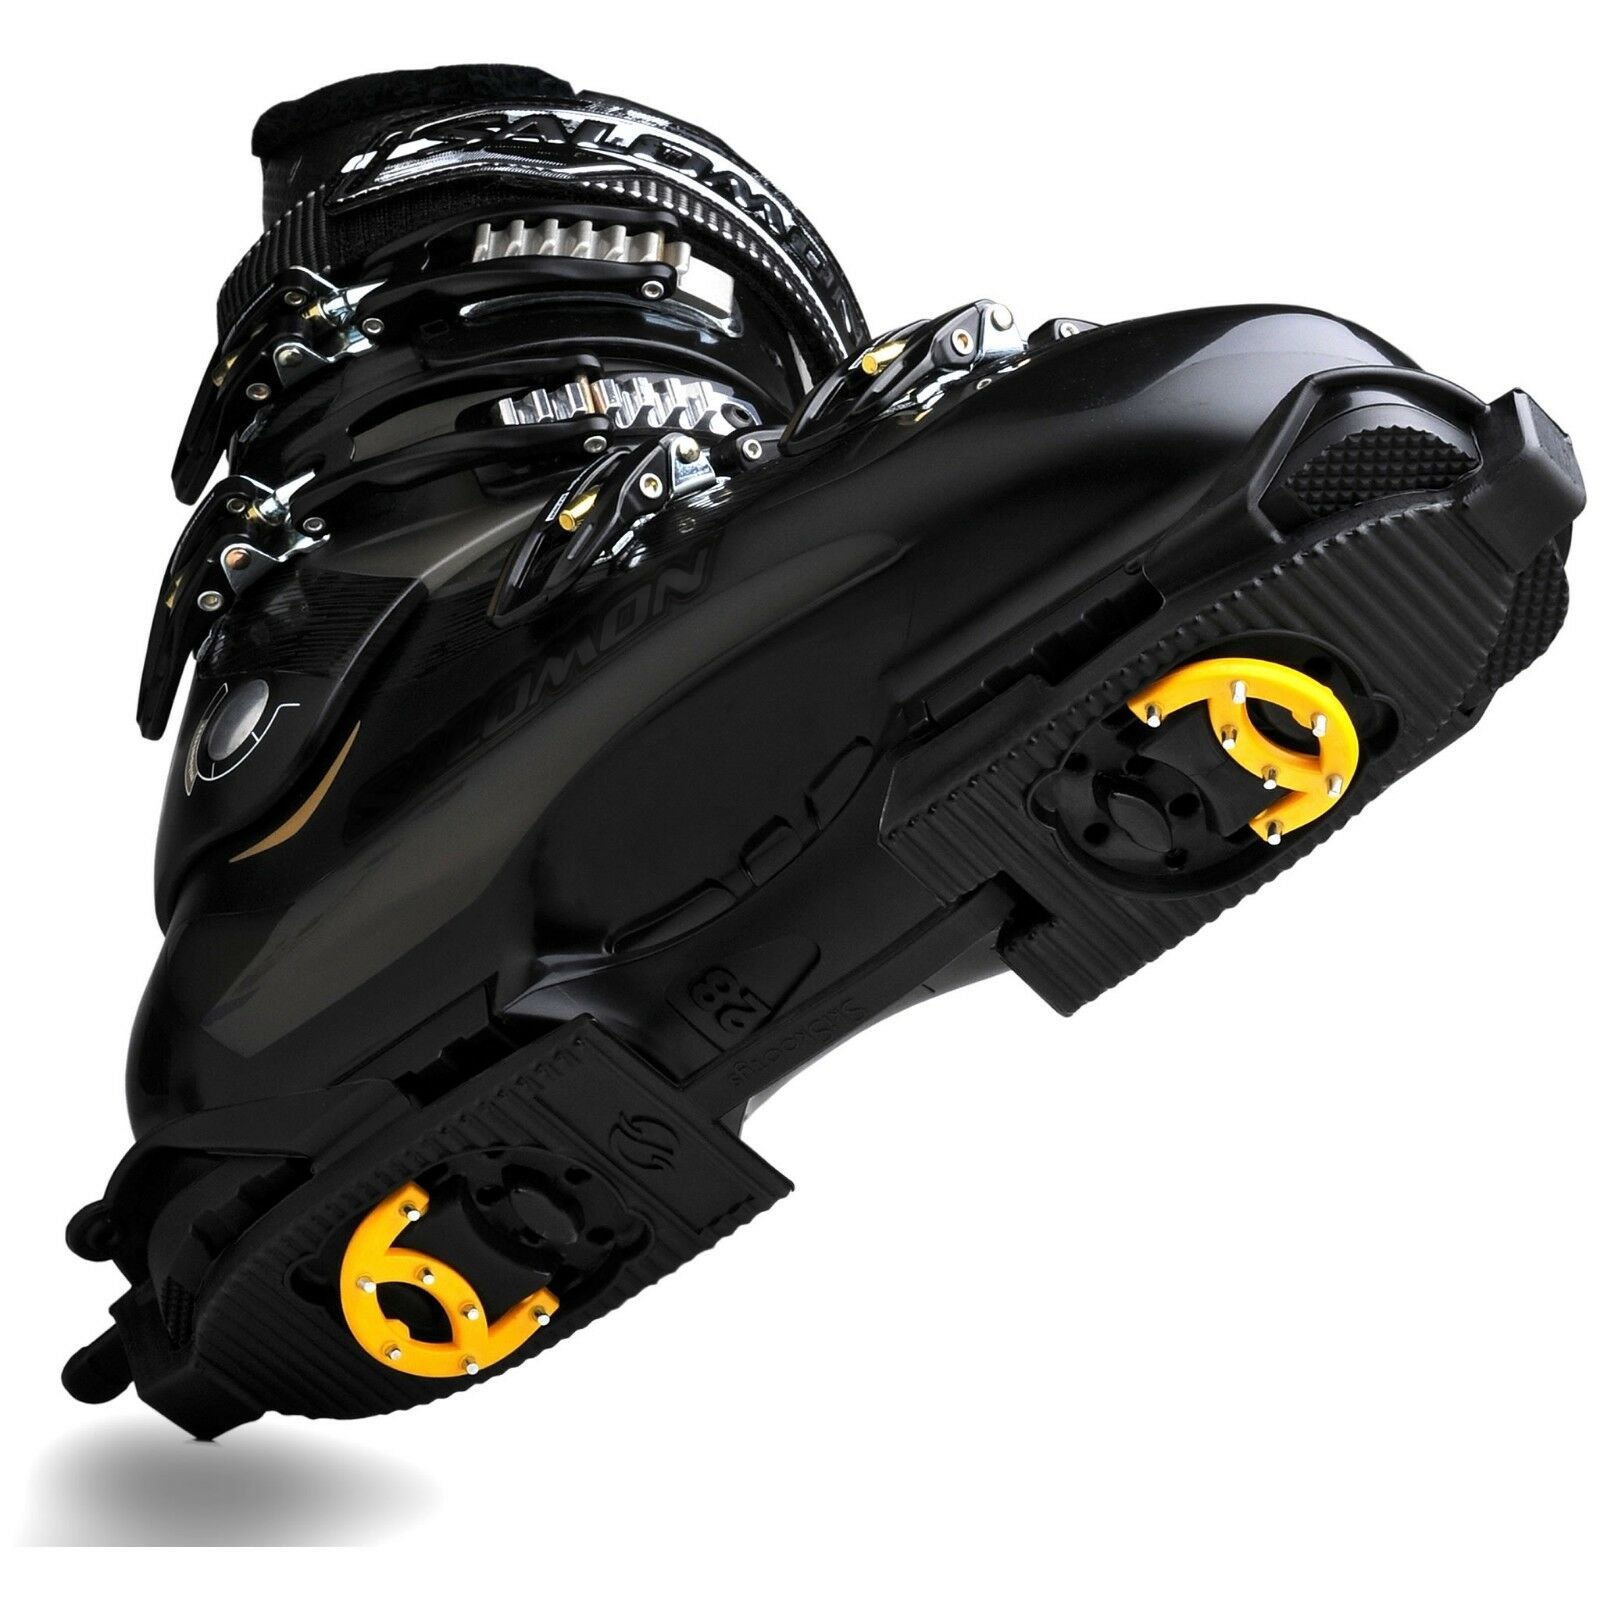 Skiskooty Claws -Ski Stiefel and Anti Slip Protection